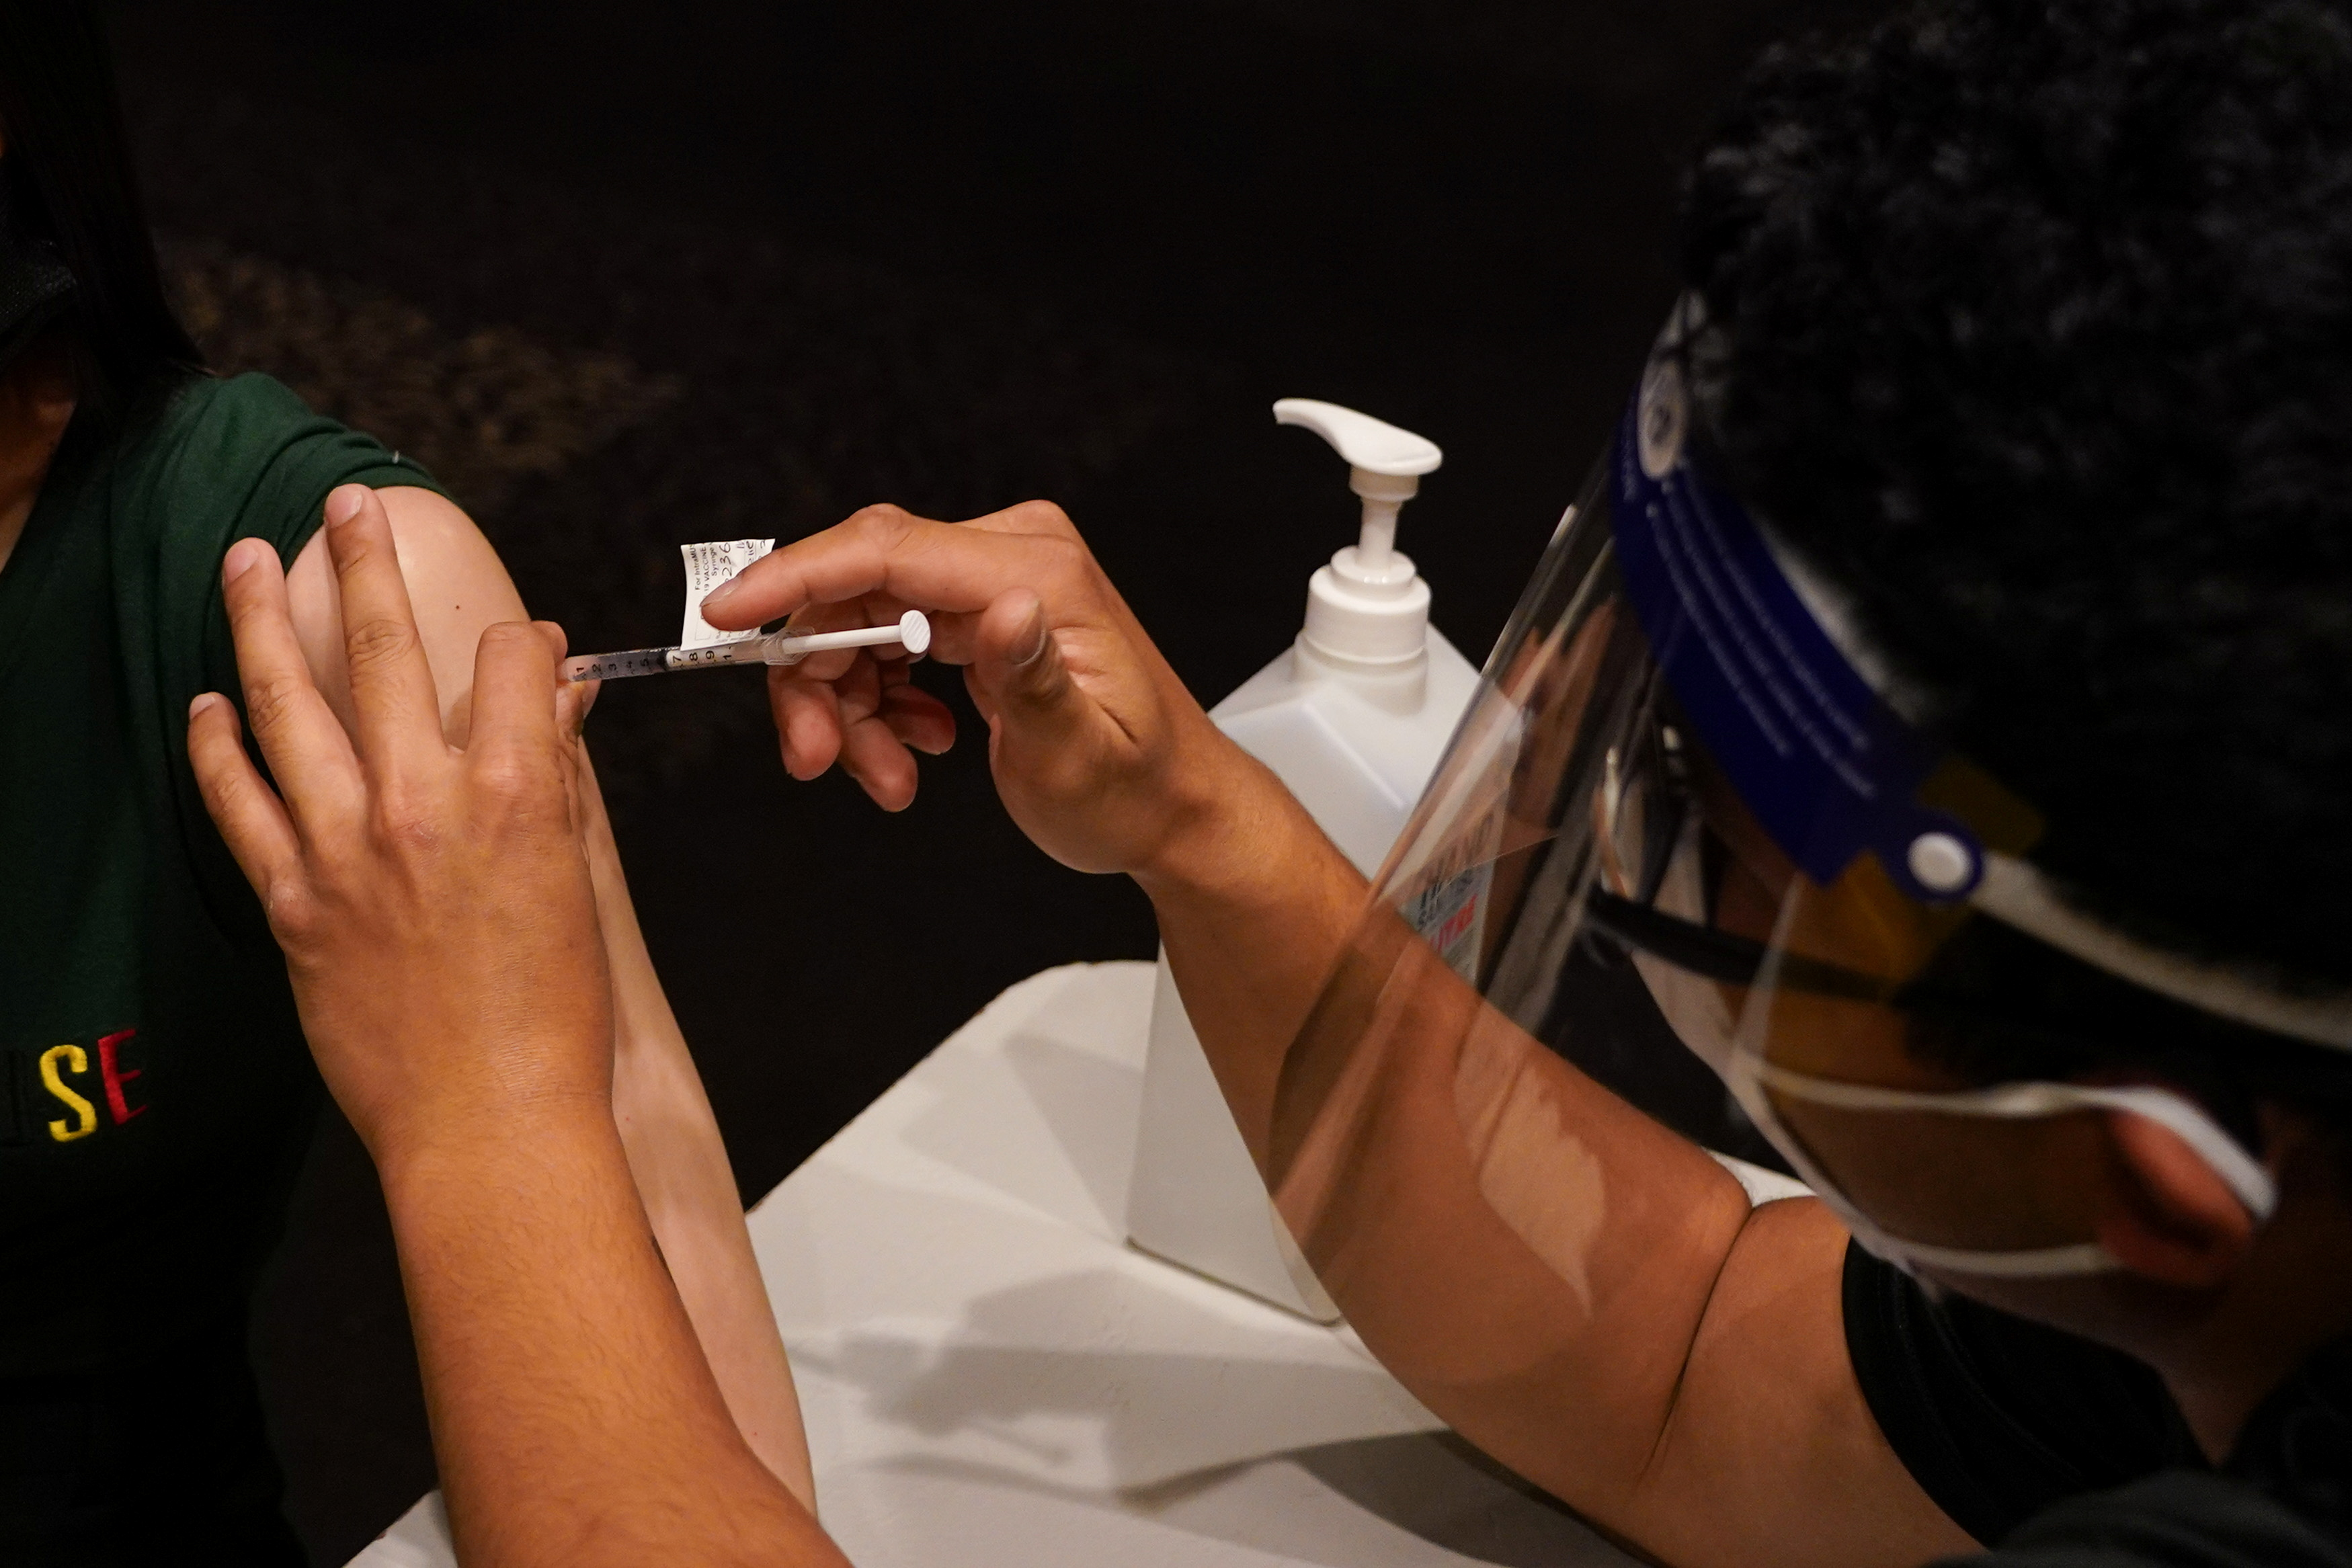 A patient receives the AstraZeneca vaccine administered by a nurse immuniser at a coronavirus disease (COVID-19) vaccination clinic at the Bankstown Sports Club as the city experiences an extended lockdown, in Sydney, Australia, August 3, 2021.  REUTERS/Loren Elliott